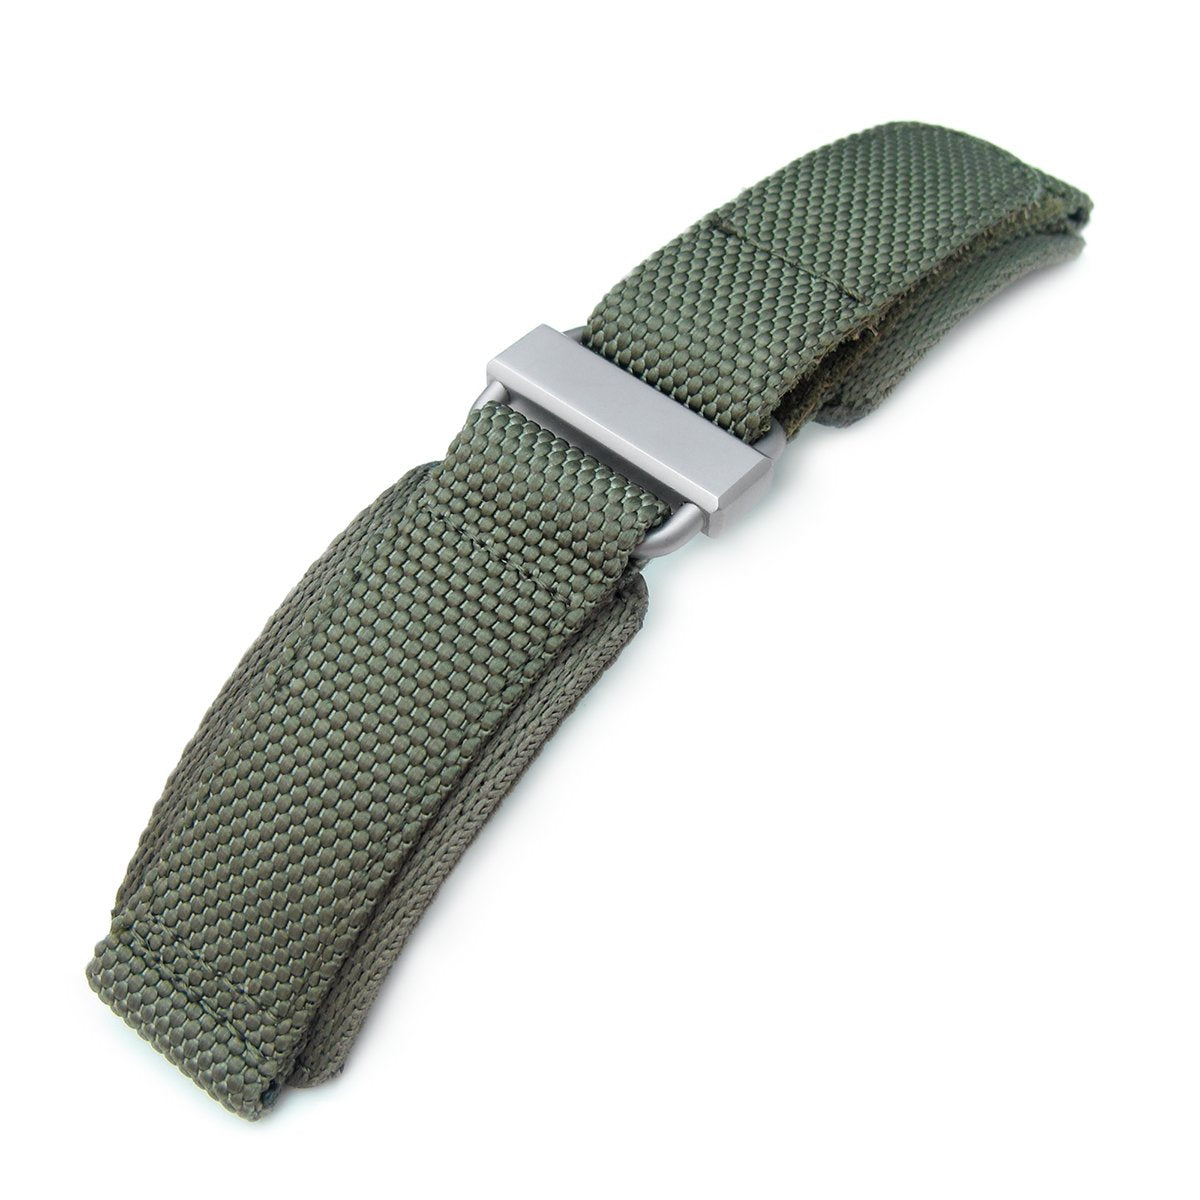 22mm MiLTAT Honeycomb Military Green Nylon Velcro Fastener Watch Strap Brushed Stainless Buckle XL Strapcode Watch Bands